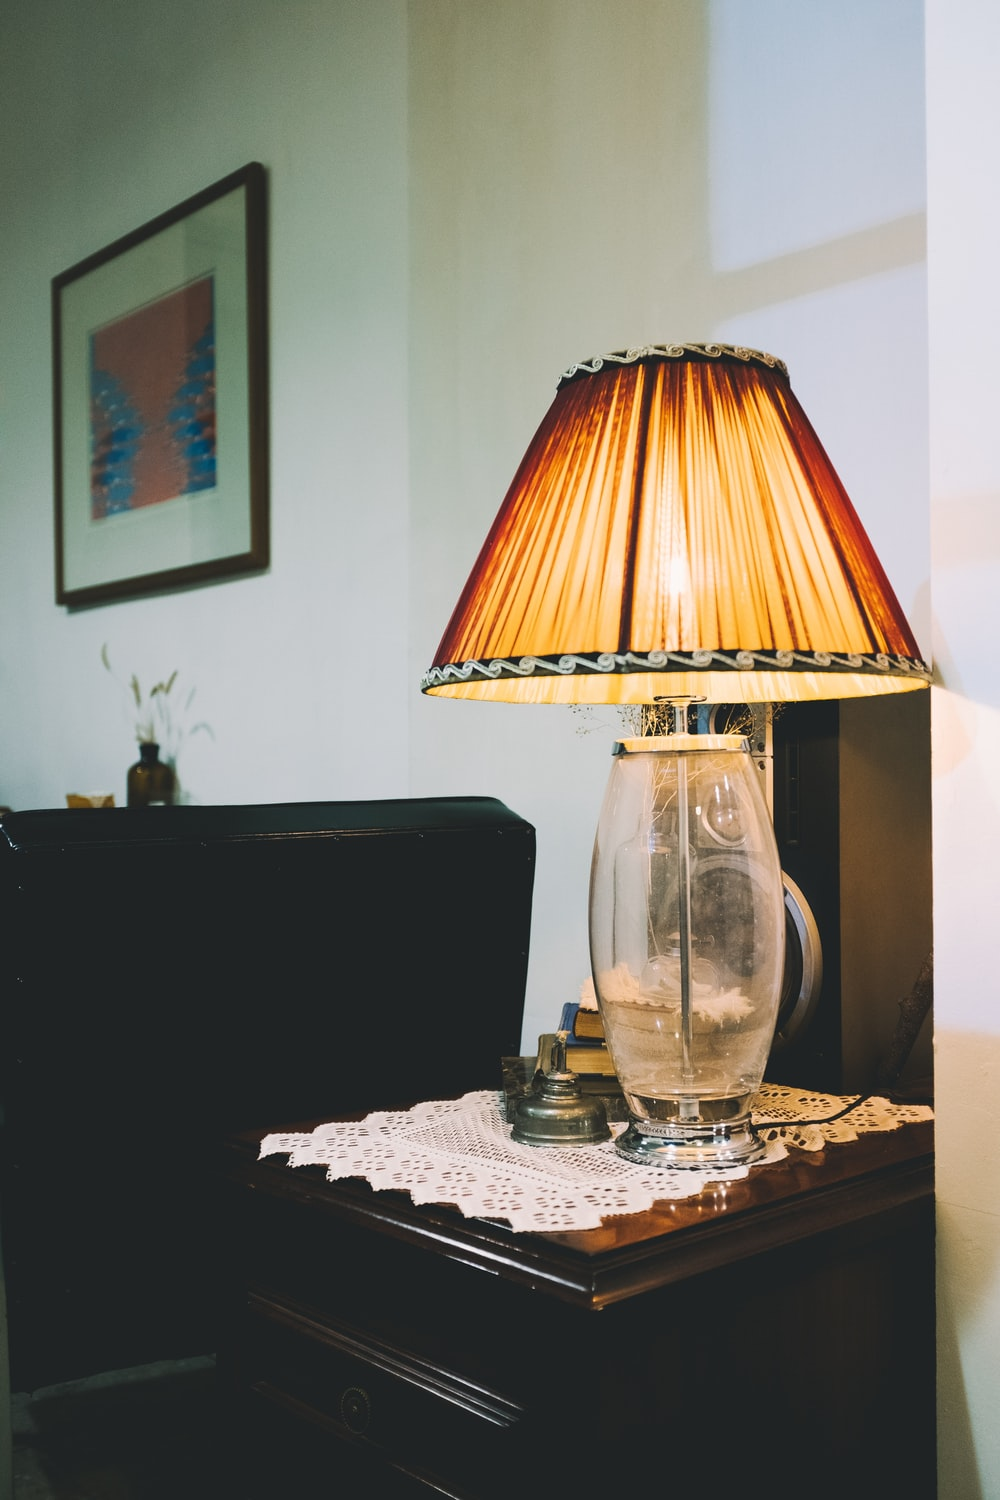 turned on clear glass table lamp on brown wooden end table